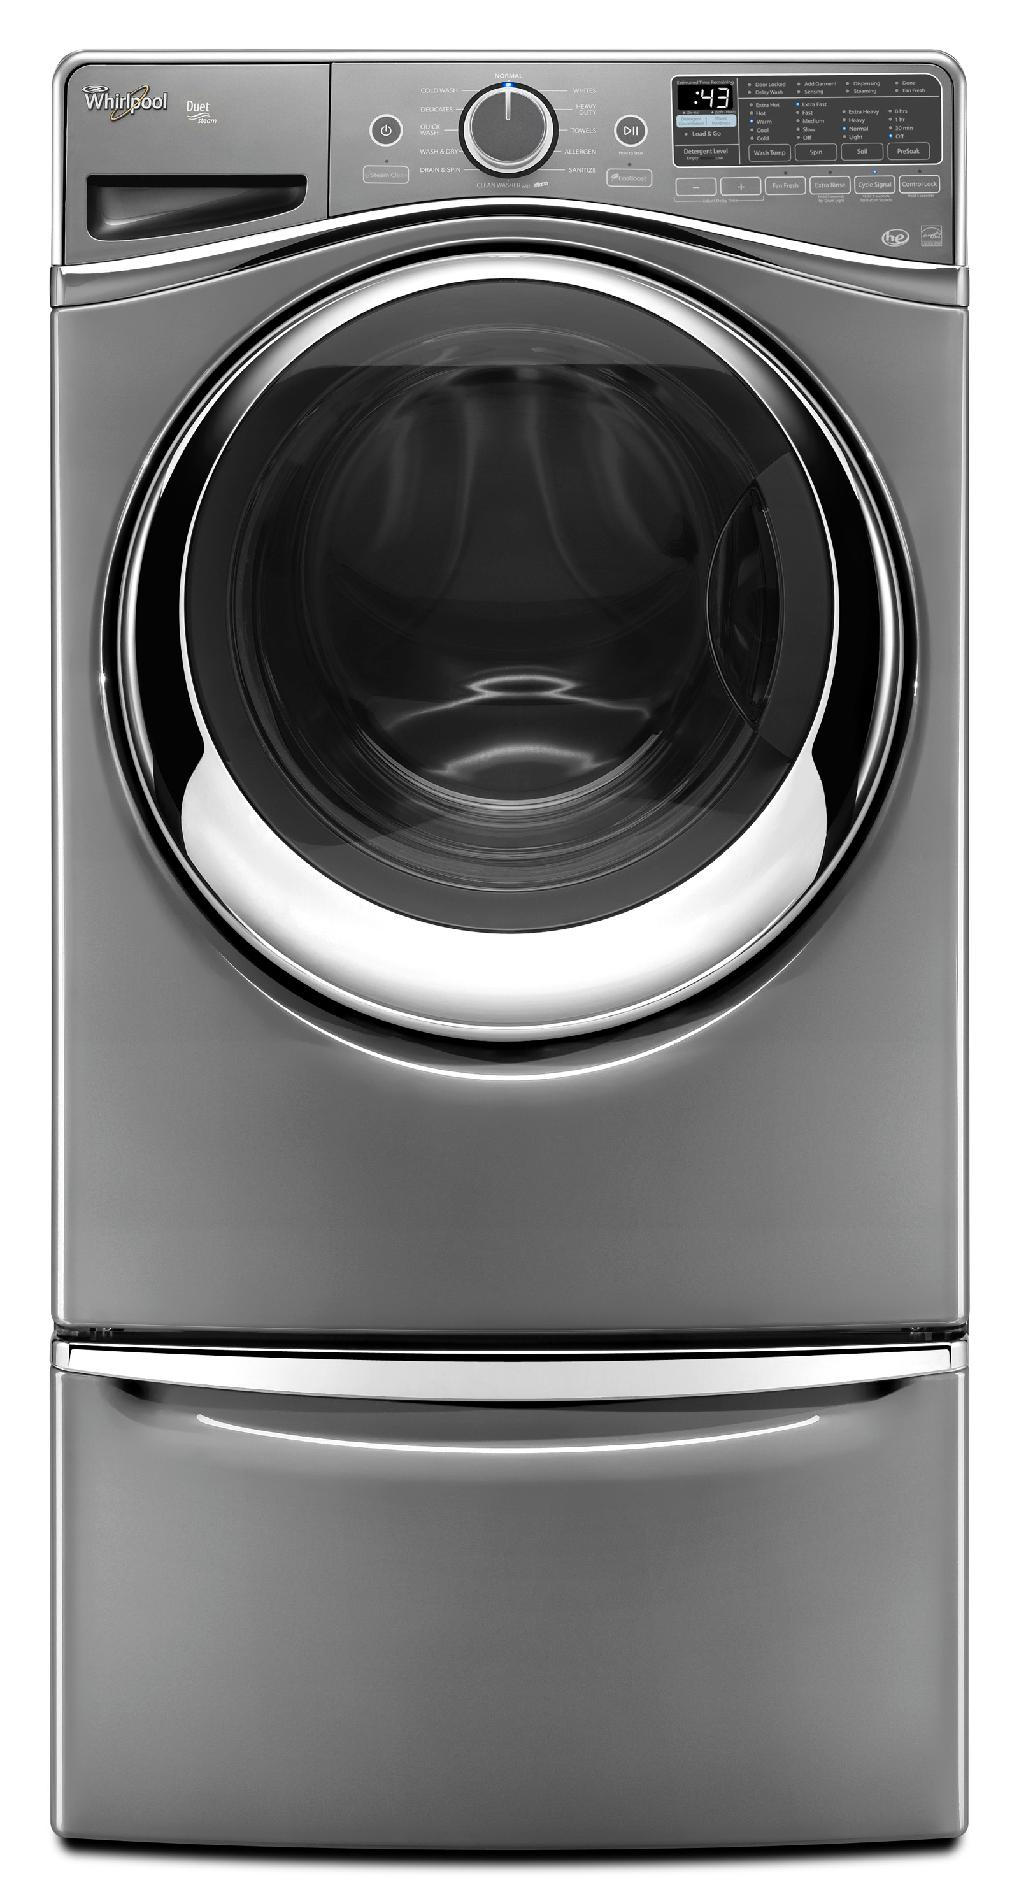 Whirlpool WFW97HEDC 4.5 cu. ft. Duet® Front-Load Washer w/ Load and Go System - Chrome Shadow